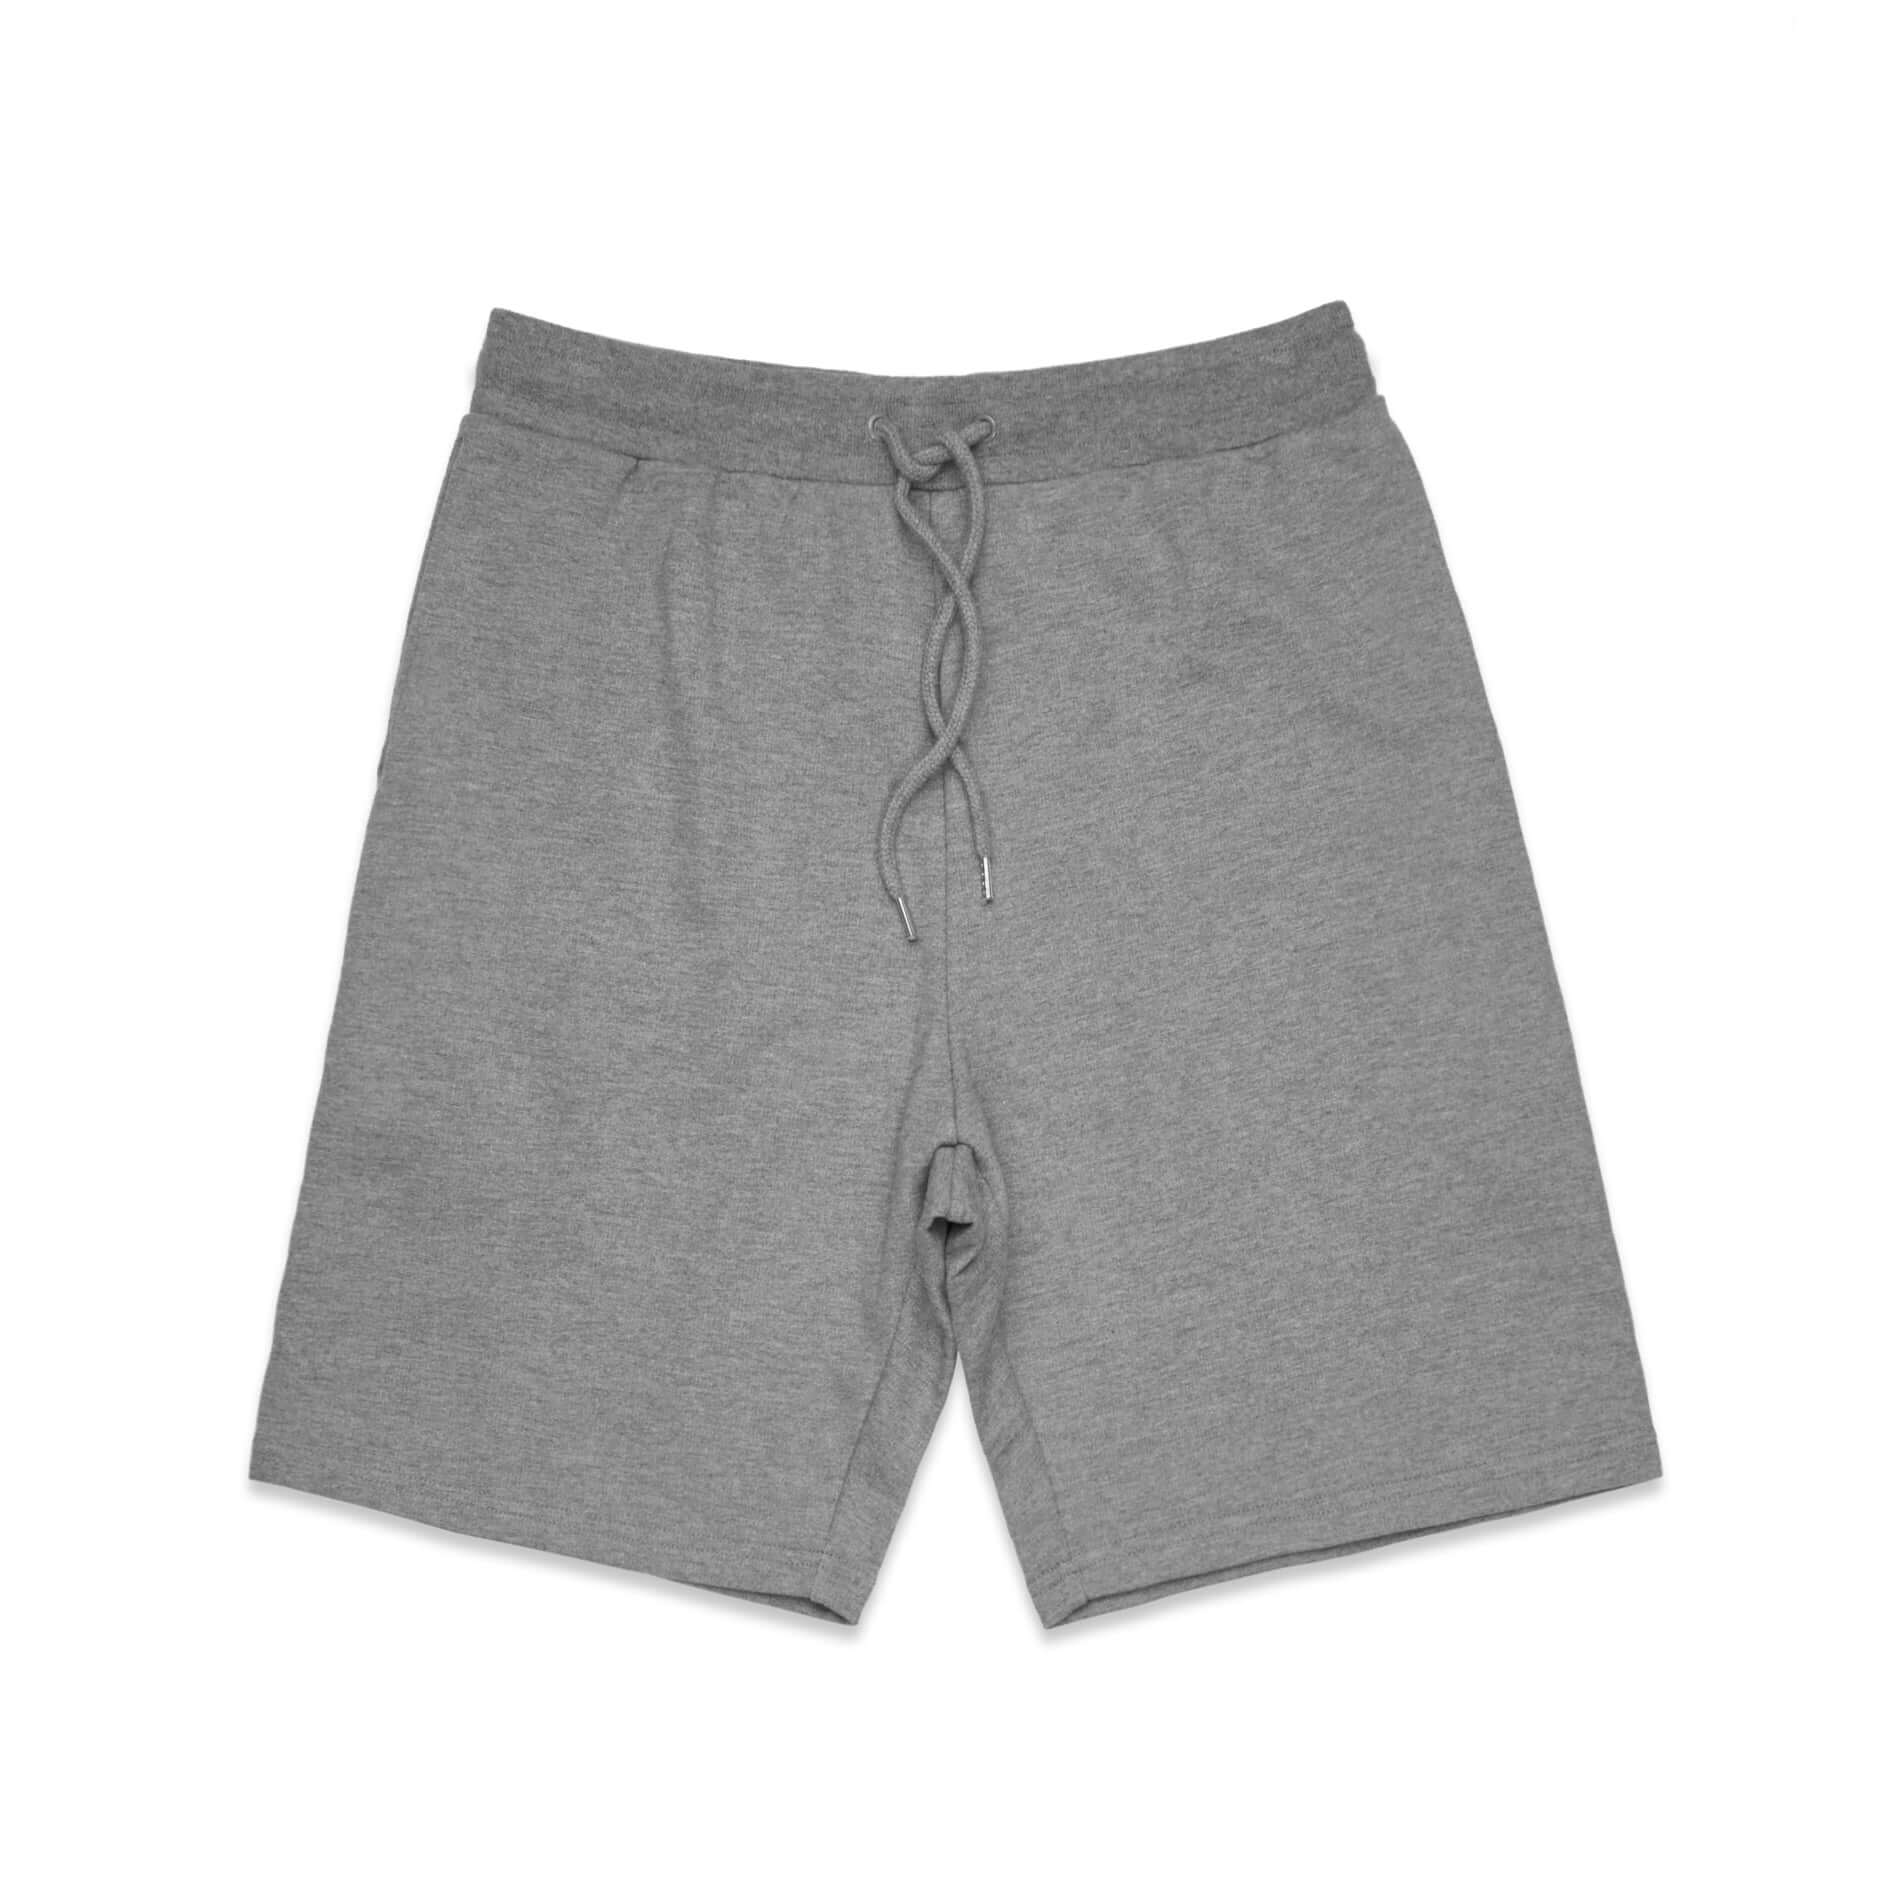 AS Colour STADIUM SHORT - Grey Marle